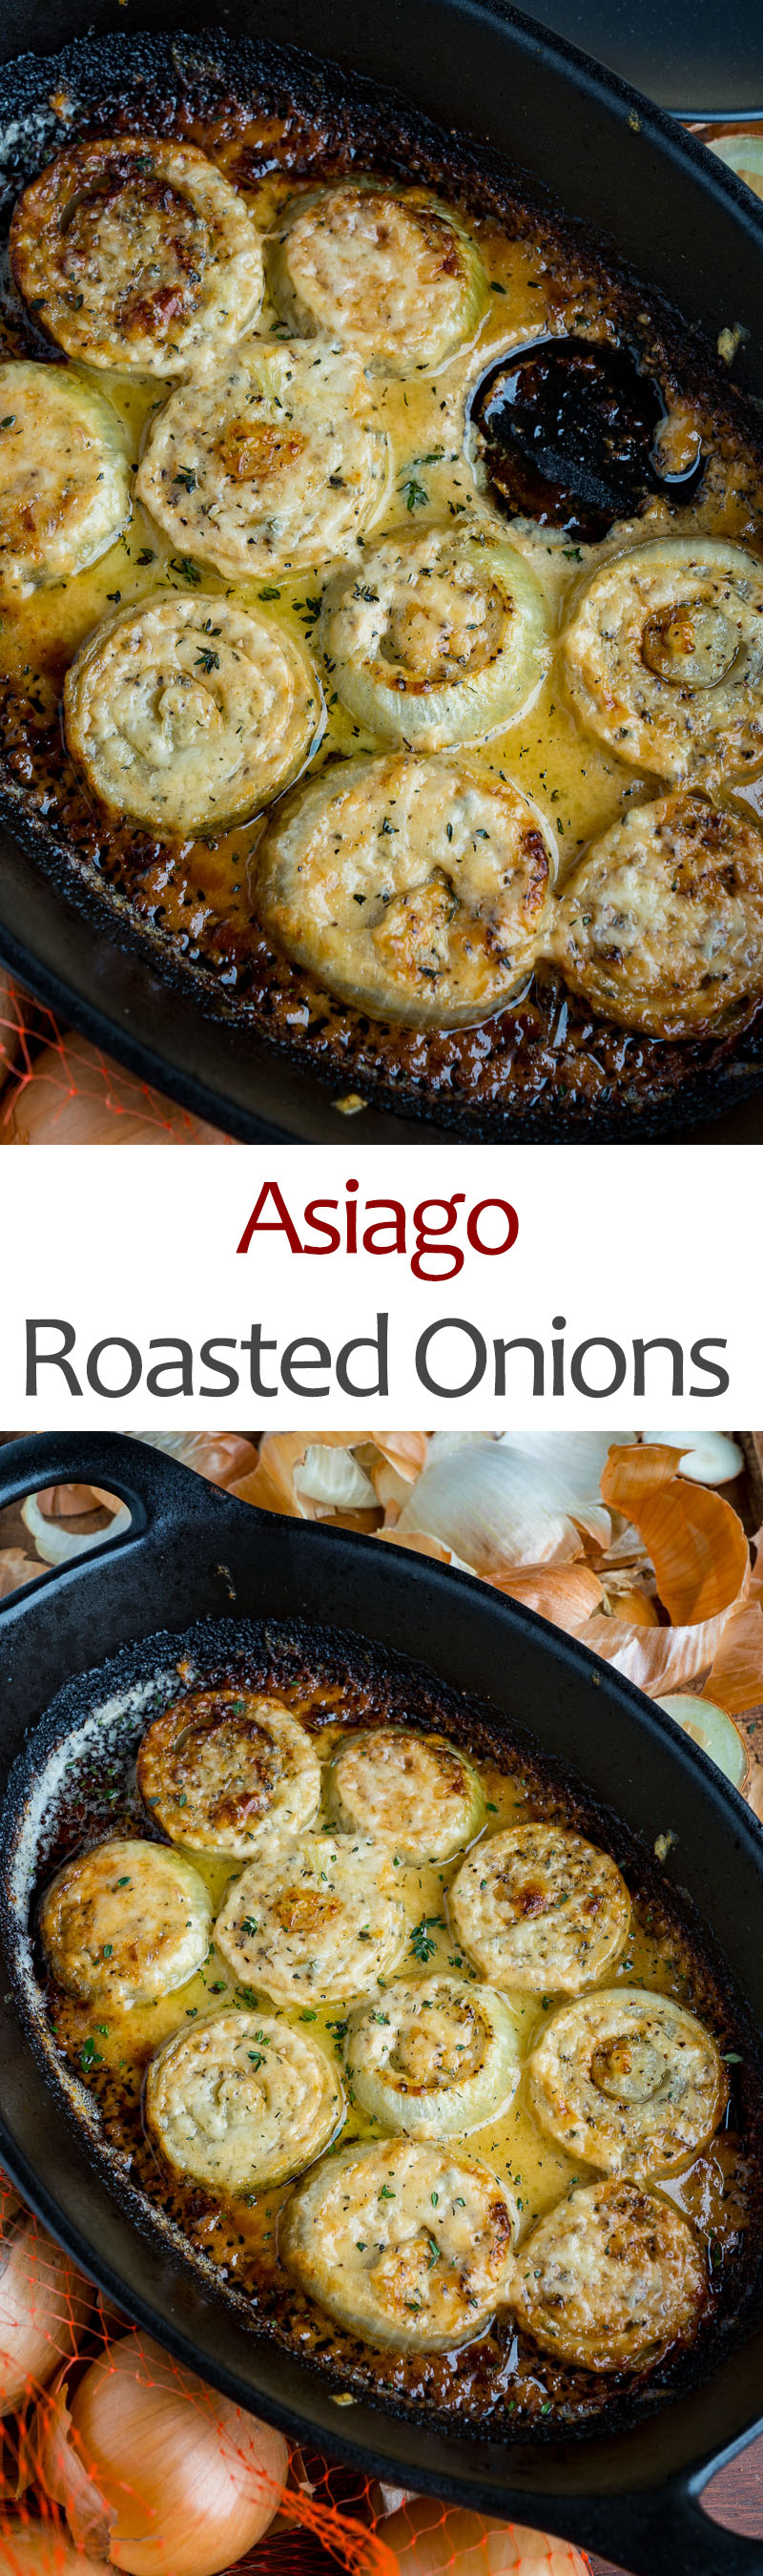 Asiago Roasted Onions